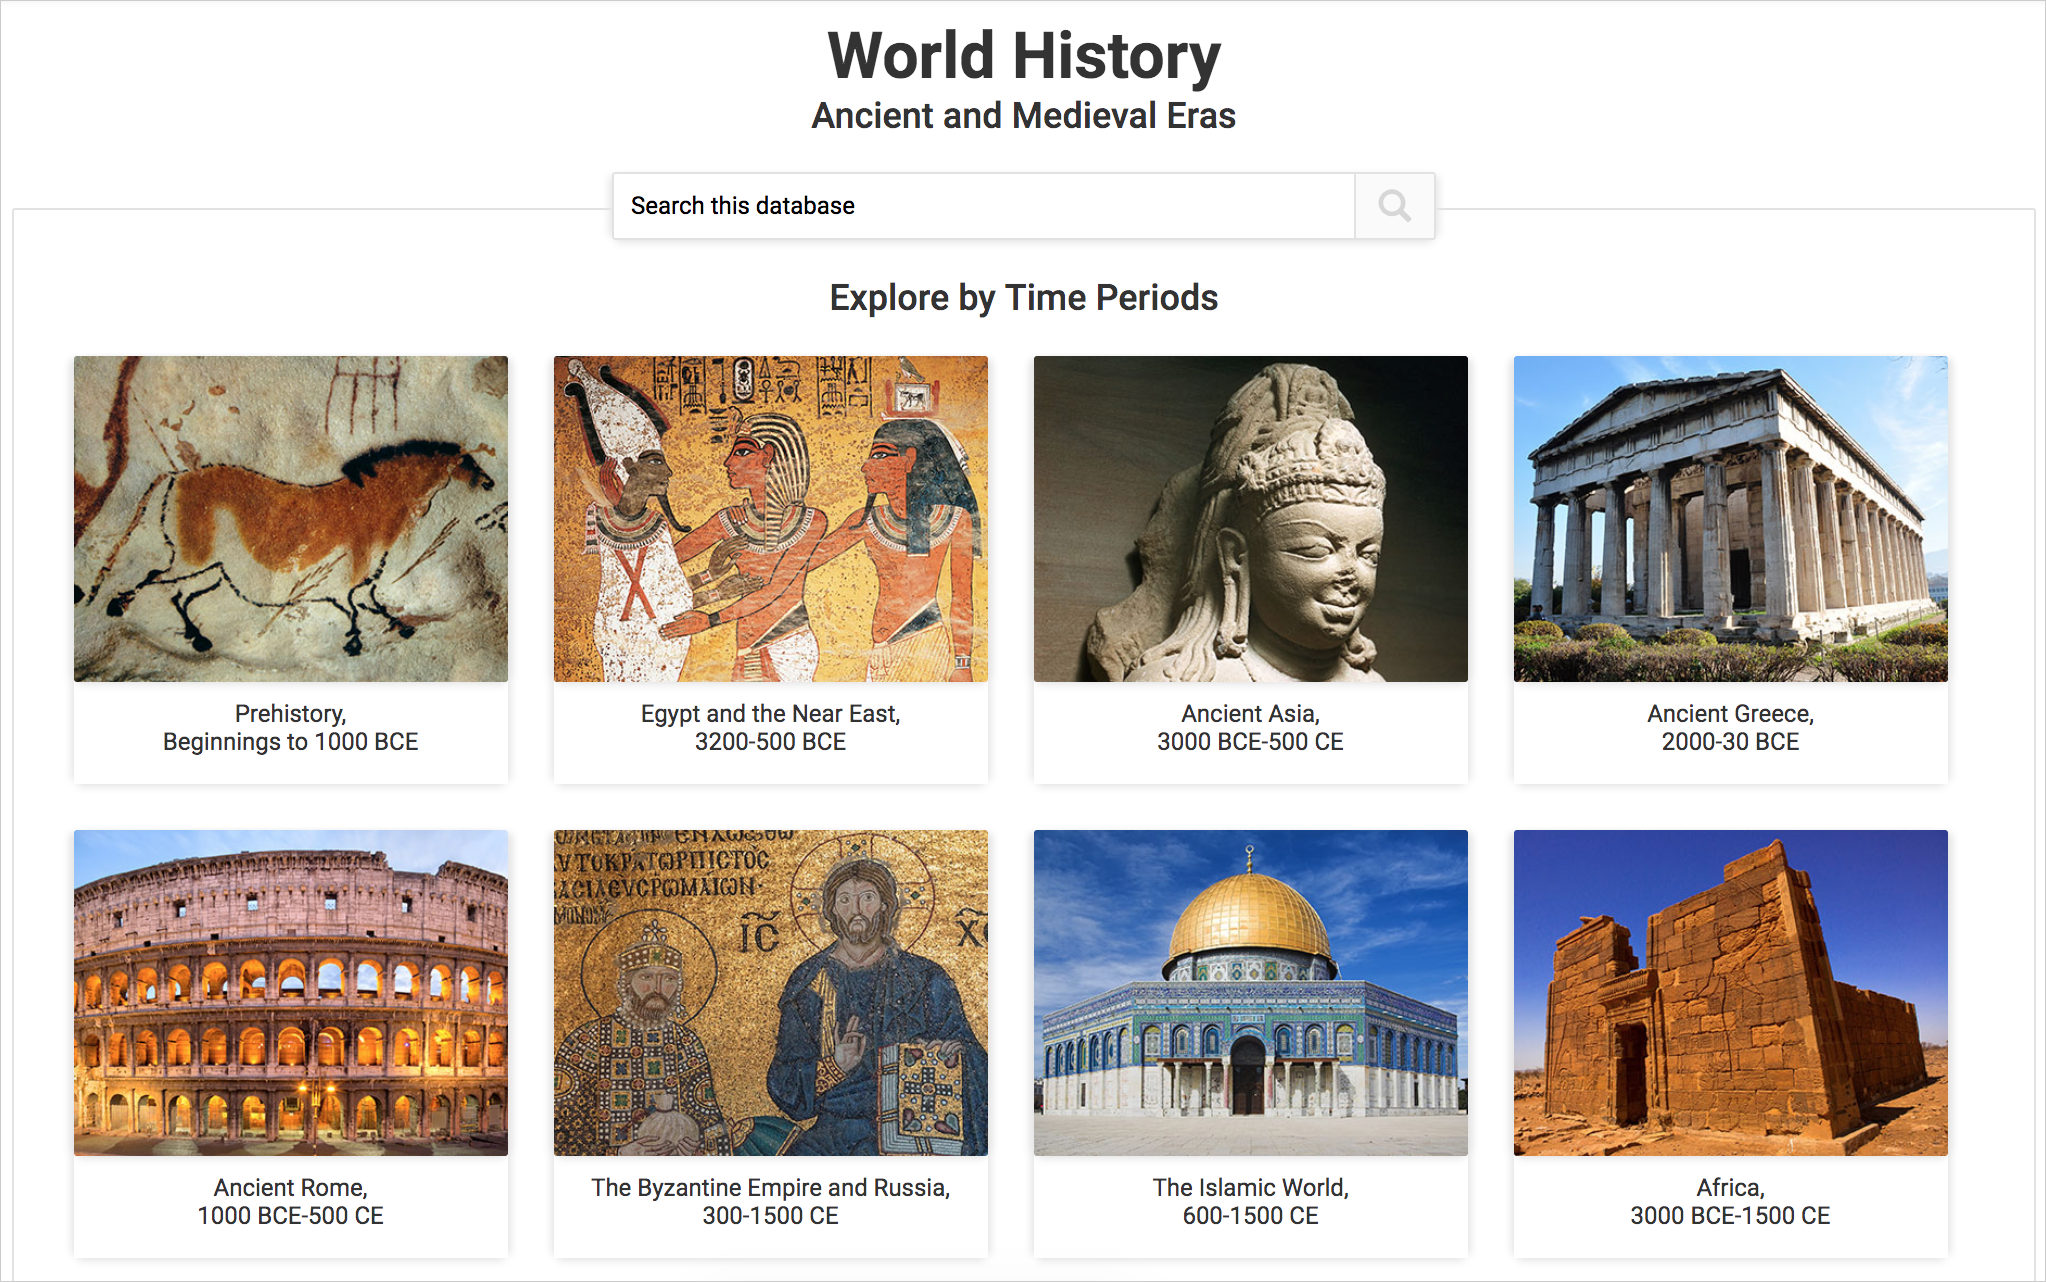 World History: Ancient and Medieval Eras - ABC-CLIO